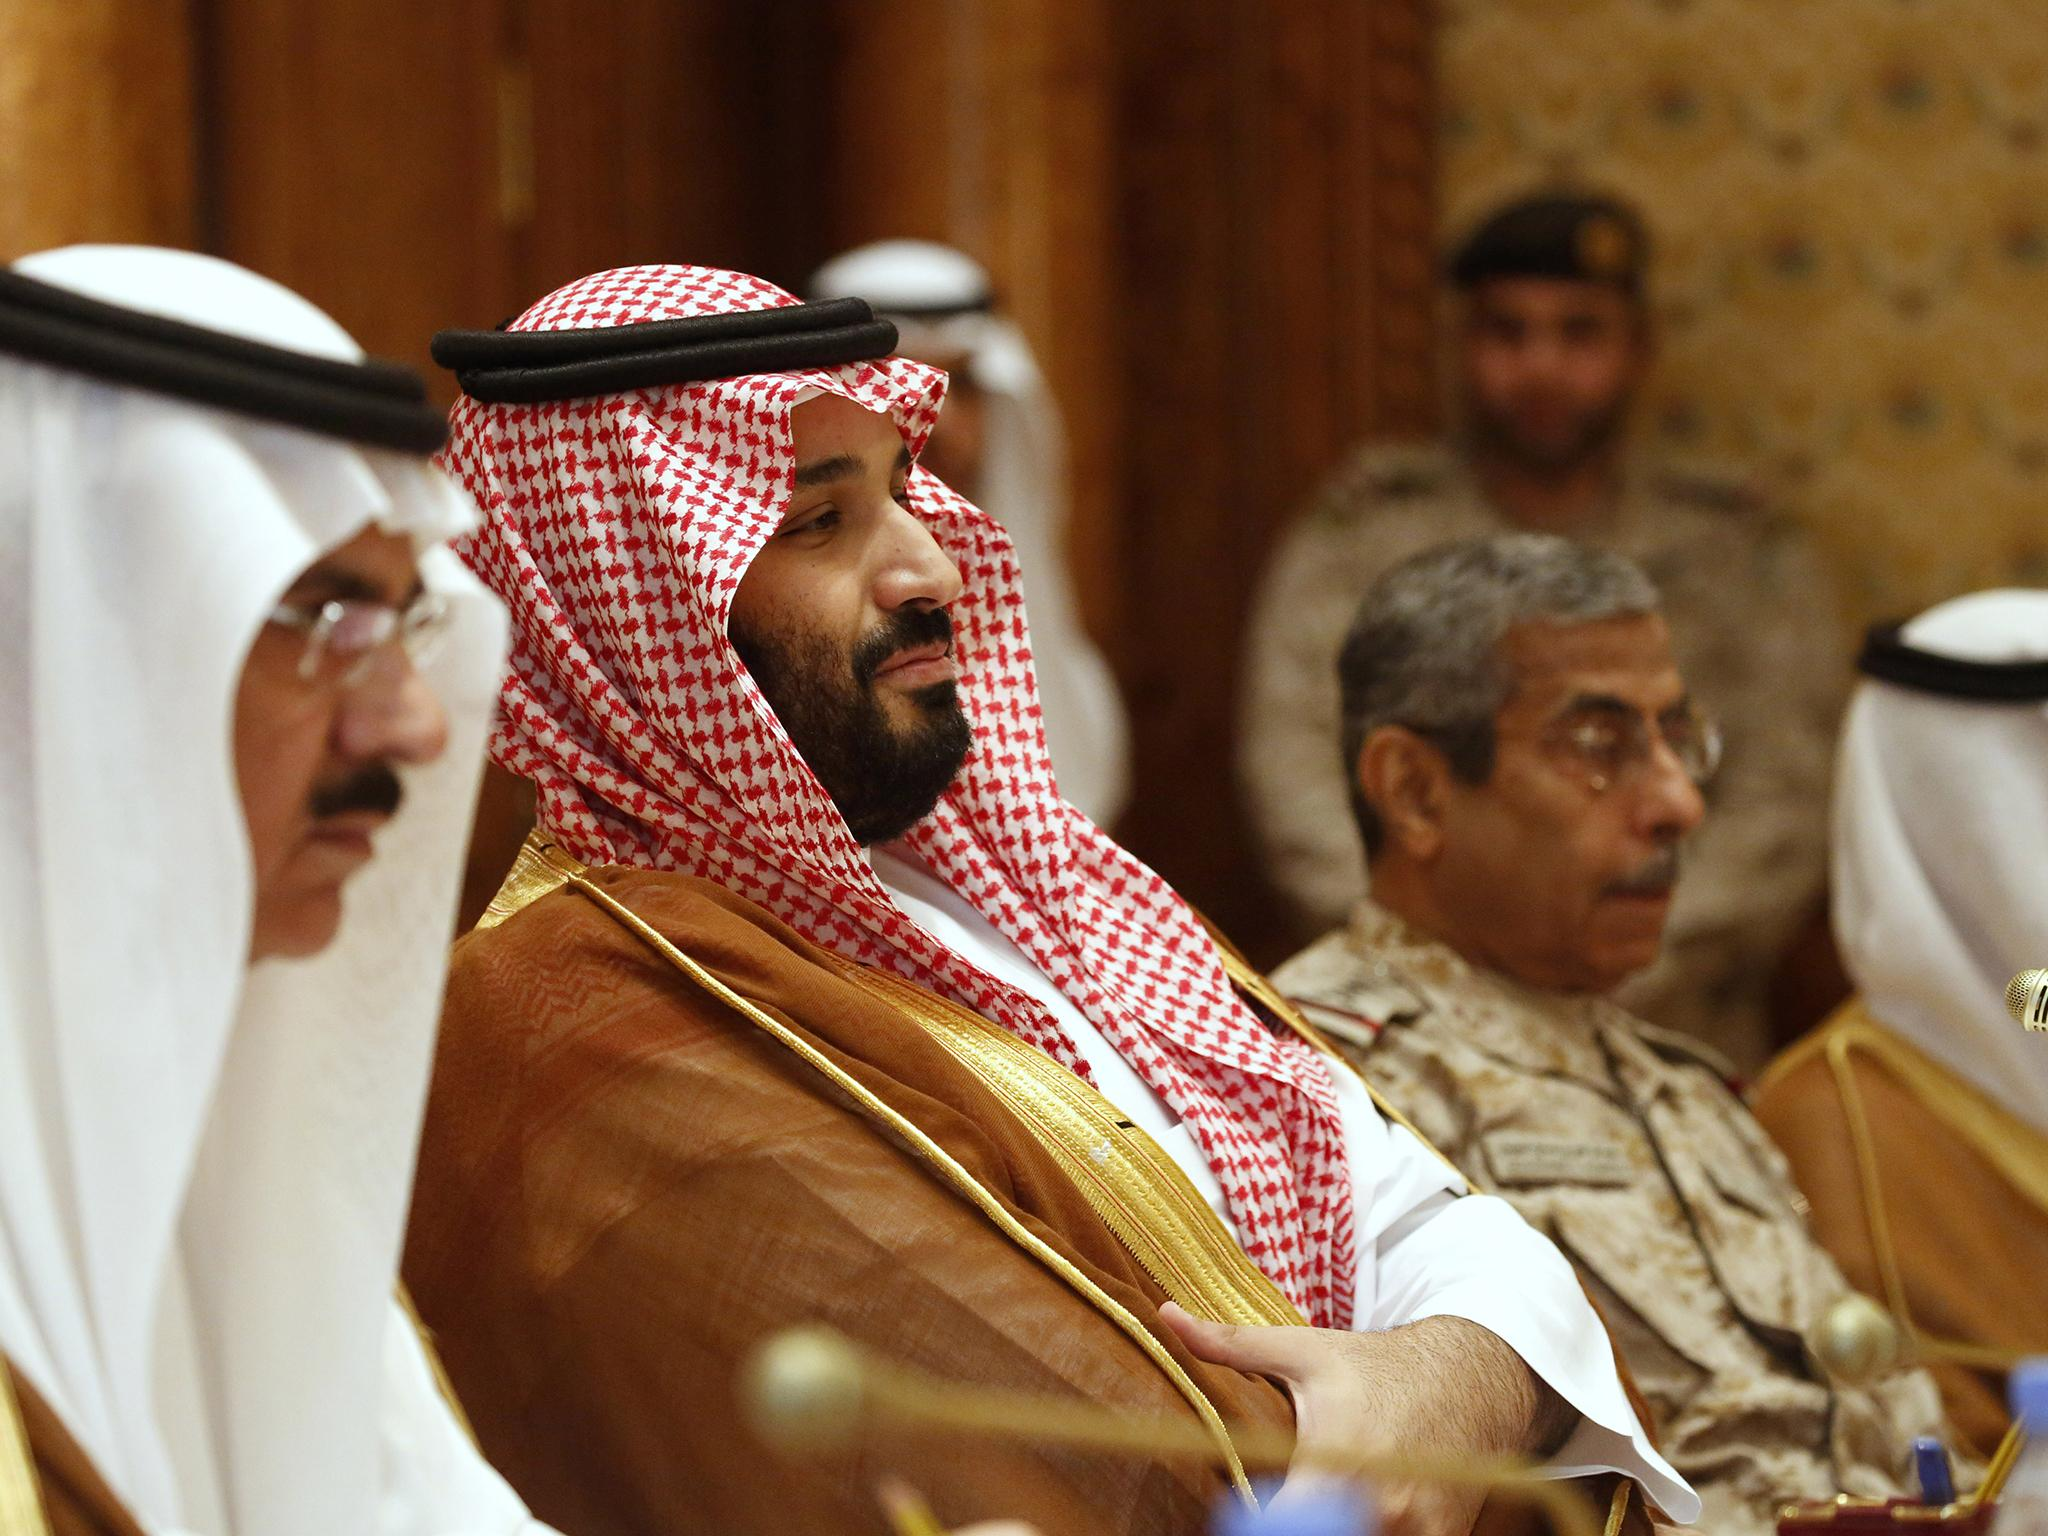 Saudi Arabia royal purge: Why it matters so much to the world beyond its borders